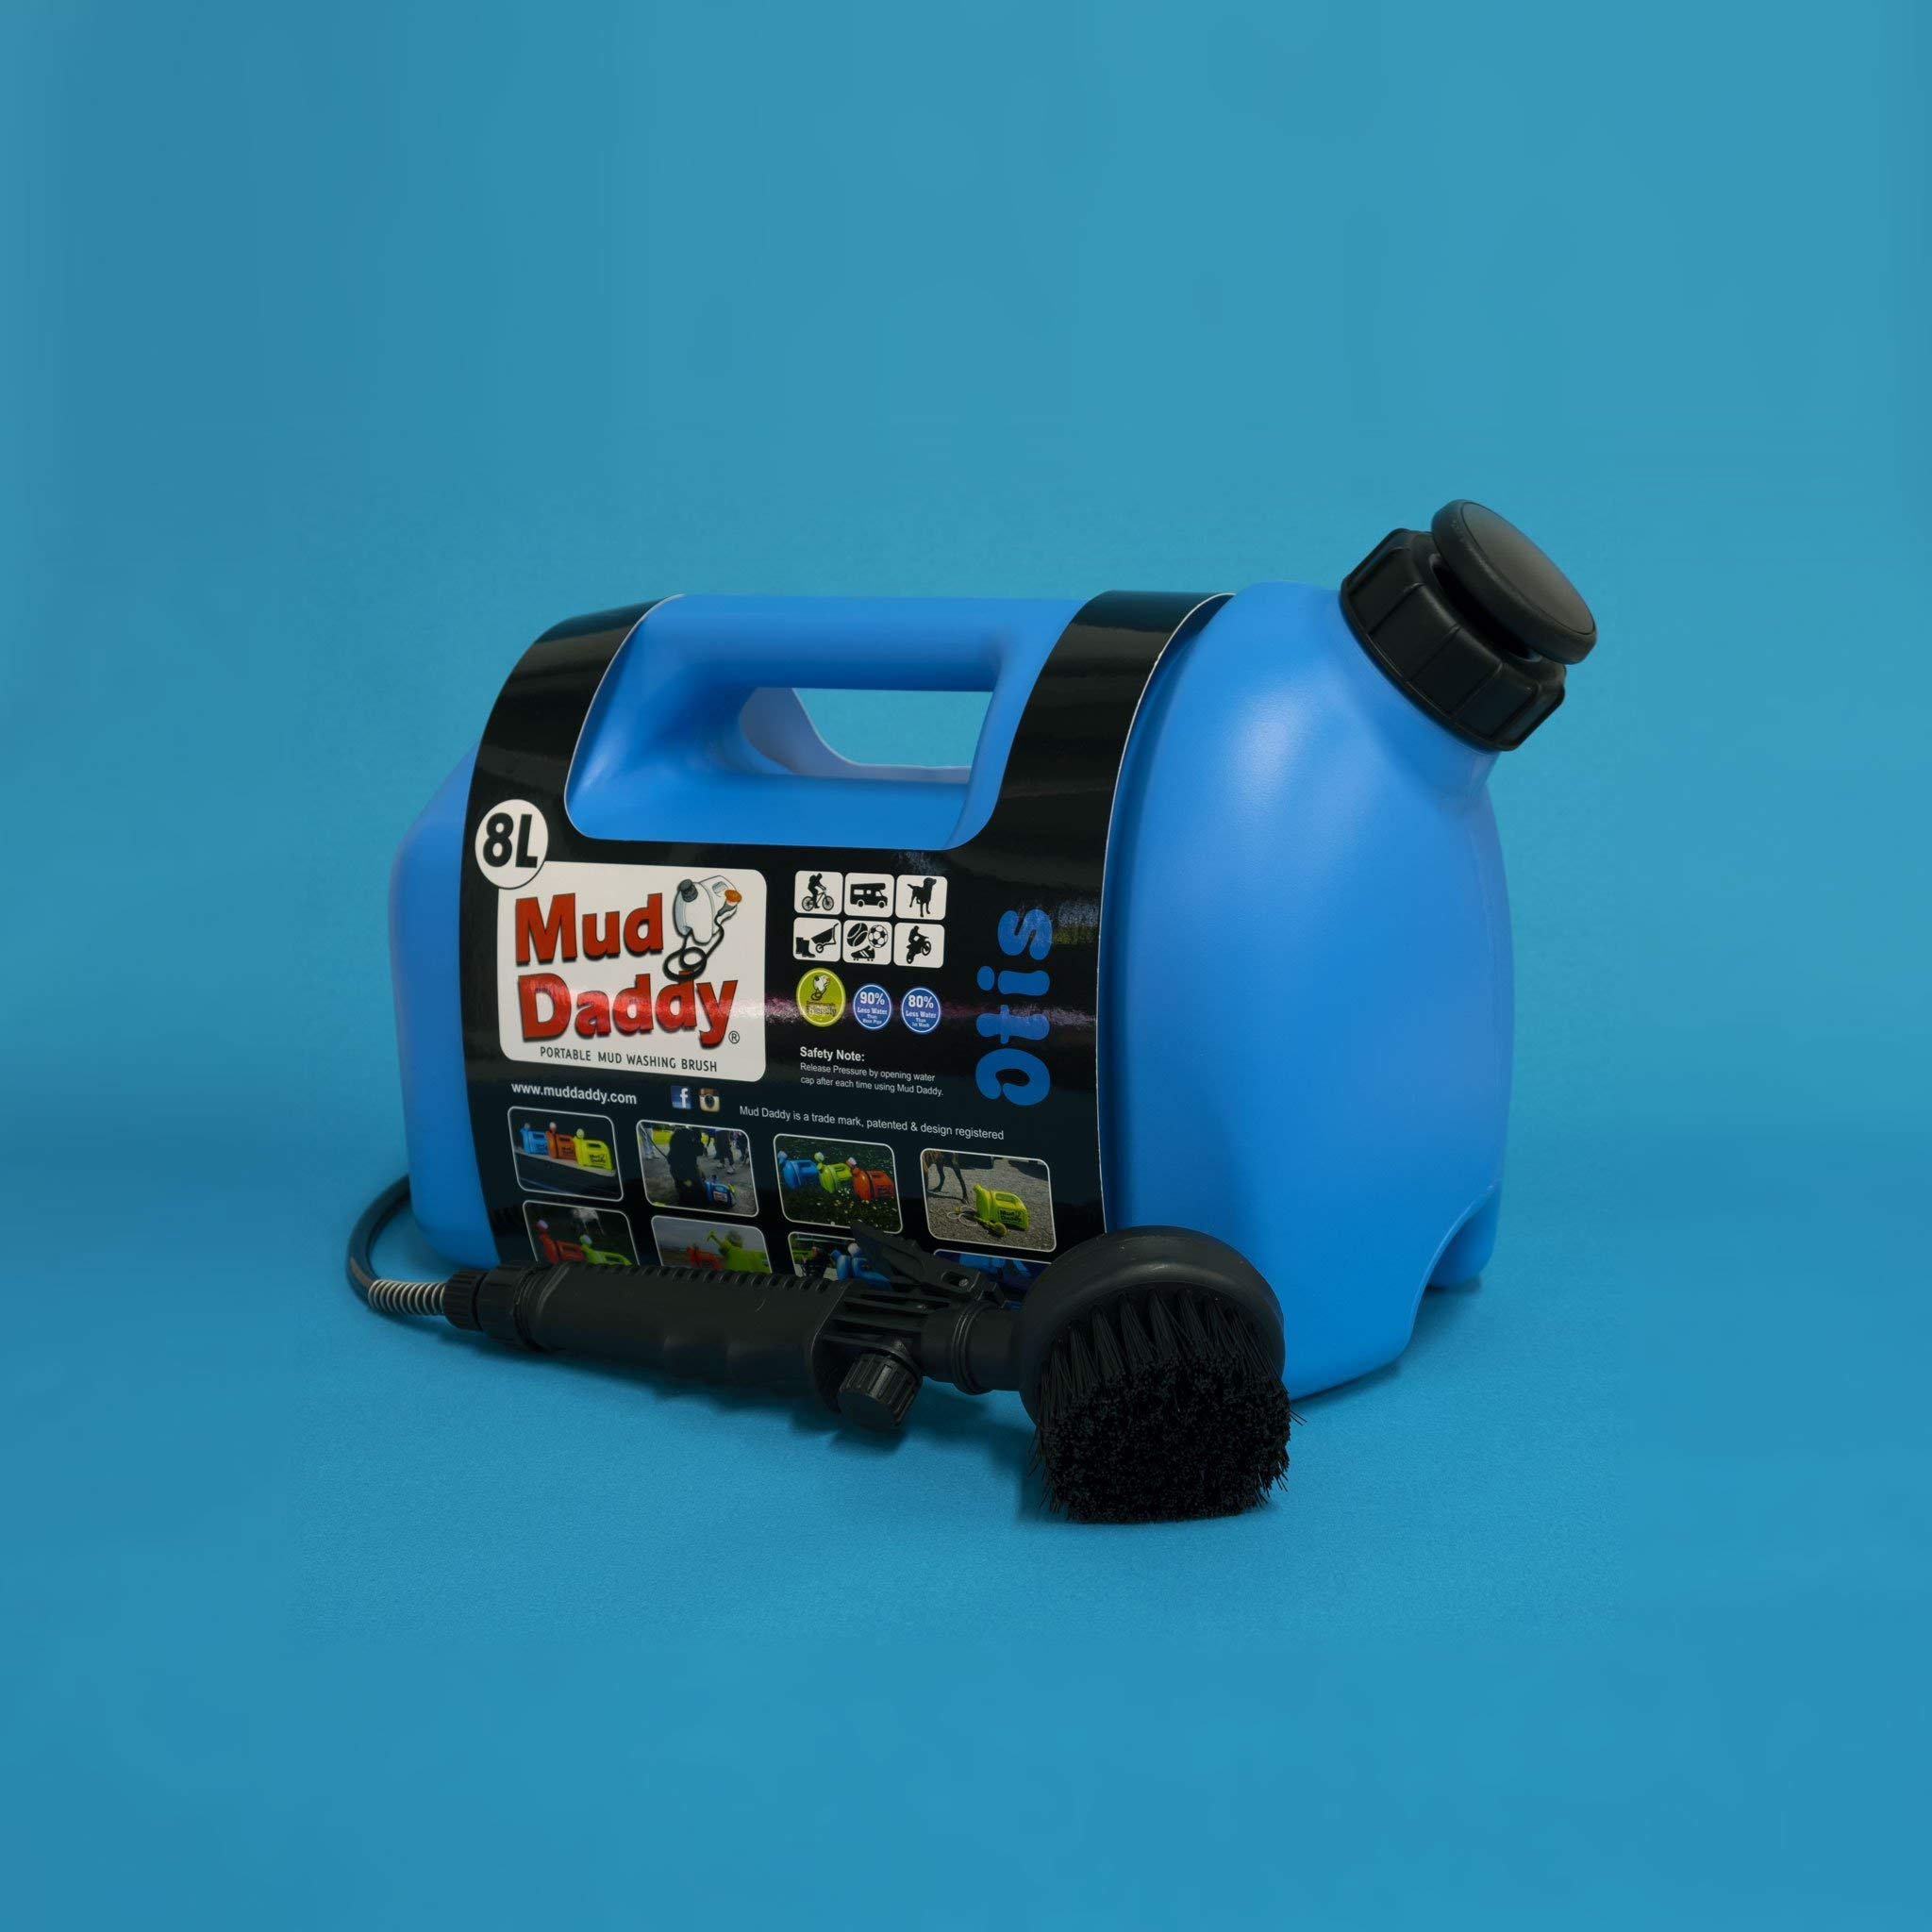 Mud Daddy 2.1 Gallon (8L) Portable Multi-Use Washing Device, Dogs, Horses, Bikes, Outdoor. (Blue) by Mud Daddy